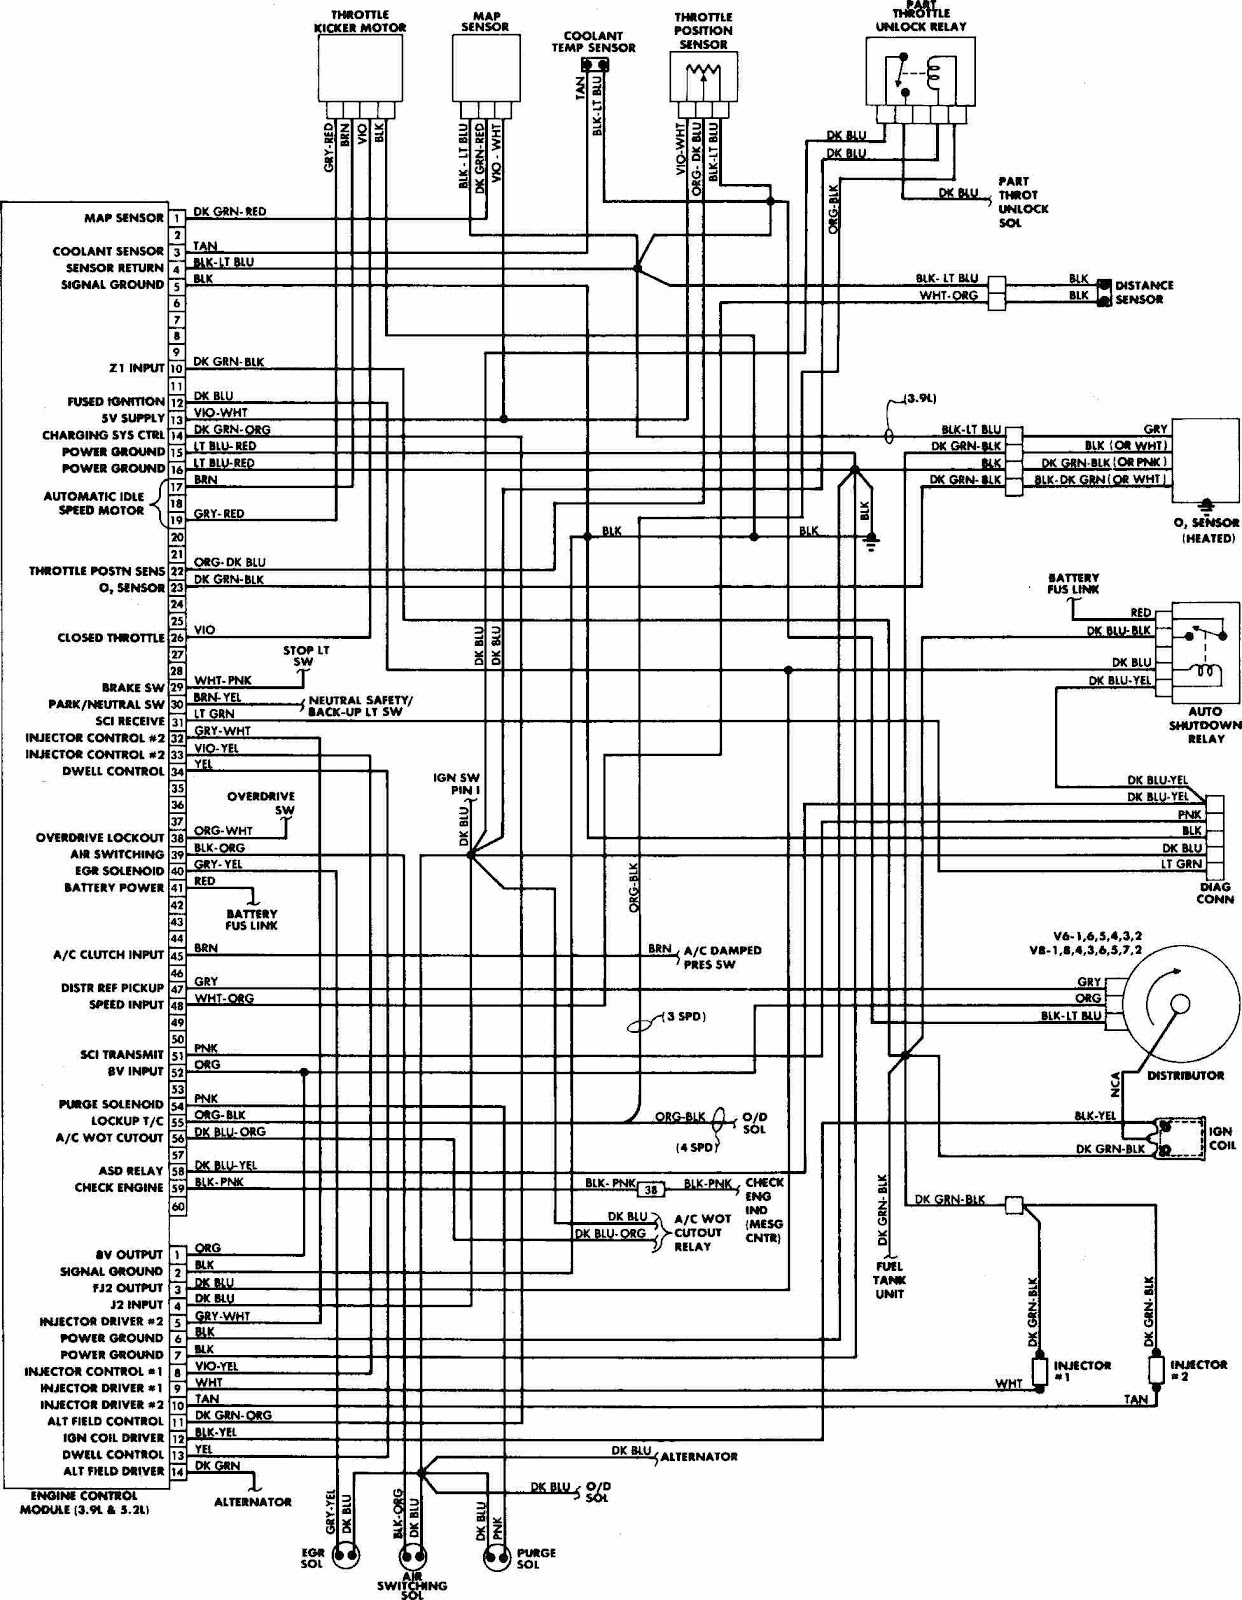 Dodge+W100+1988+Engine+Control+Wiring+Diagram dodge 318 engine wiring diagram wiring diagram simonand GMC Truck Electrical Wiring Diagrams at gsmx.co